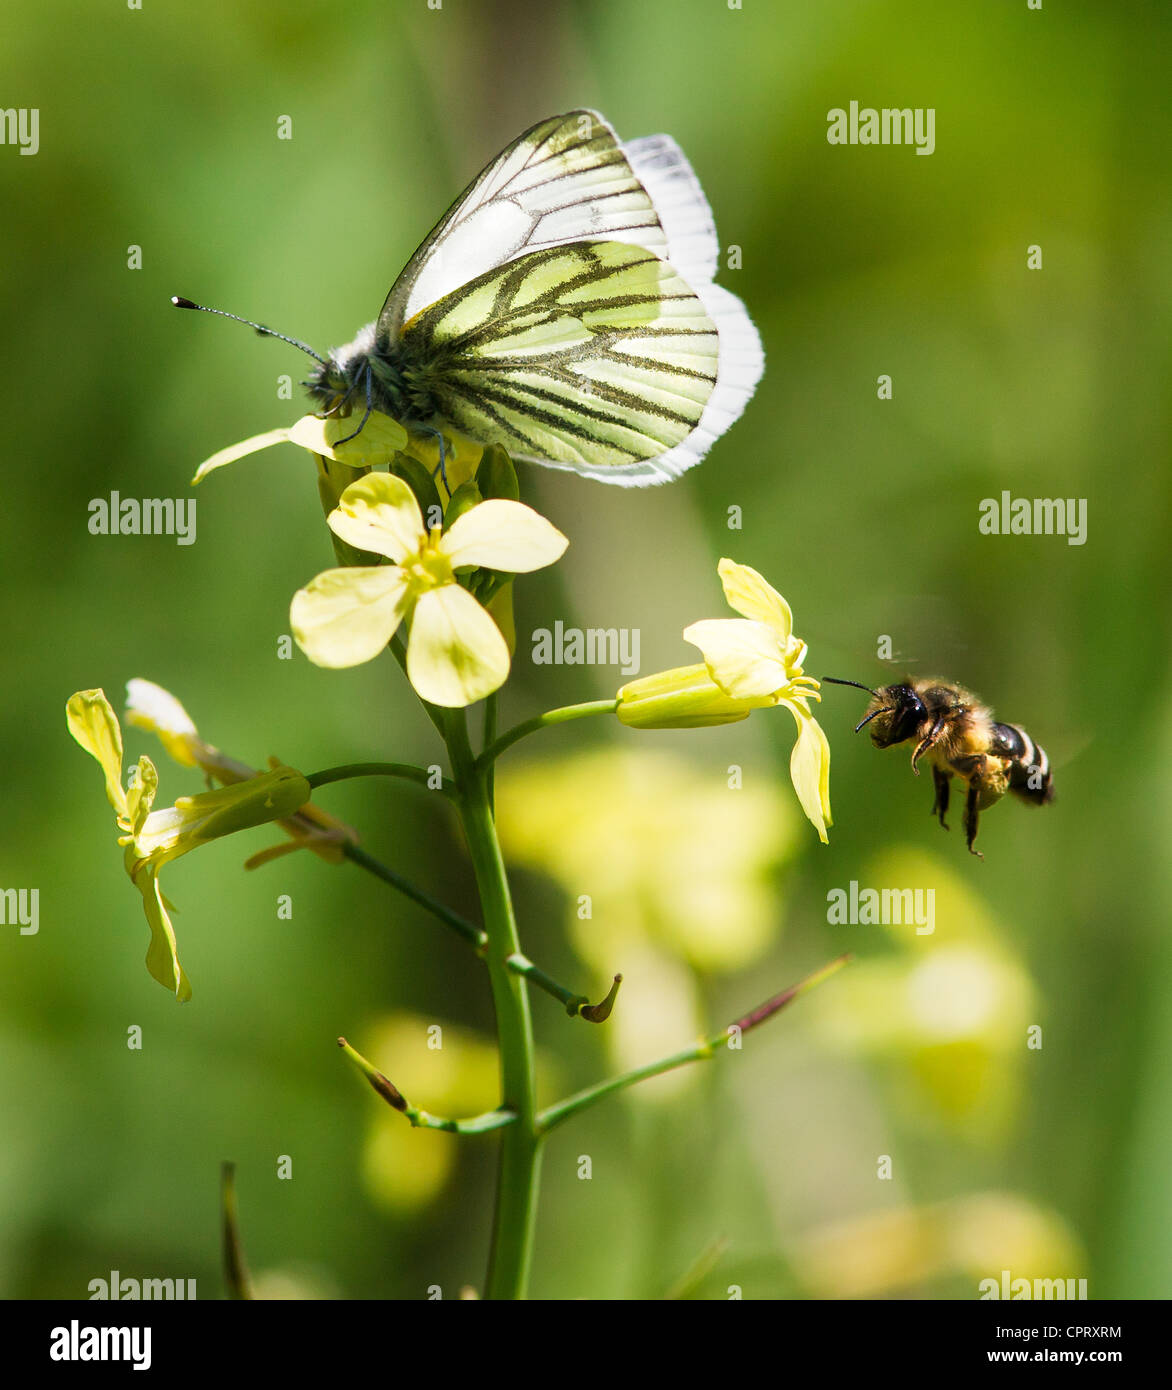 Green Veined White butterfly Pieris napi and flying bee feeding on yellow flowers of Wild Cabbage - Stock Image